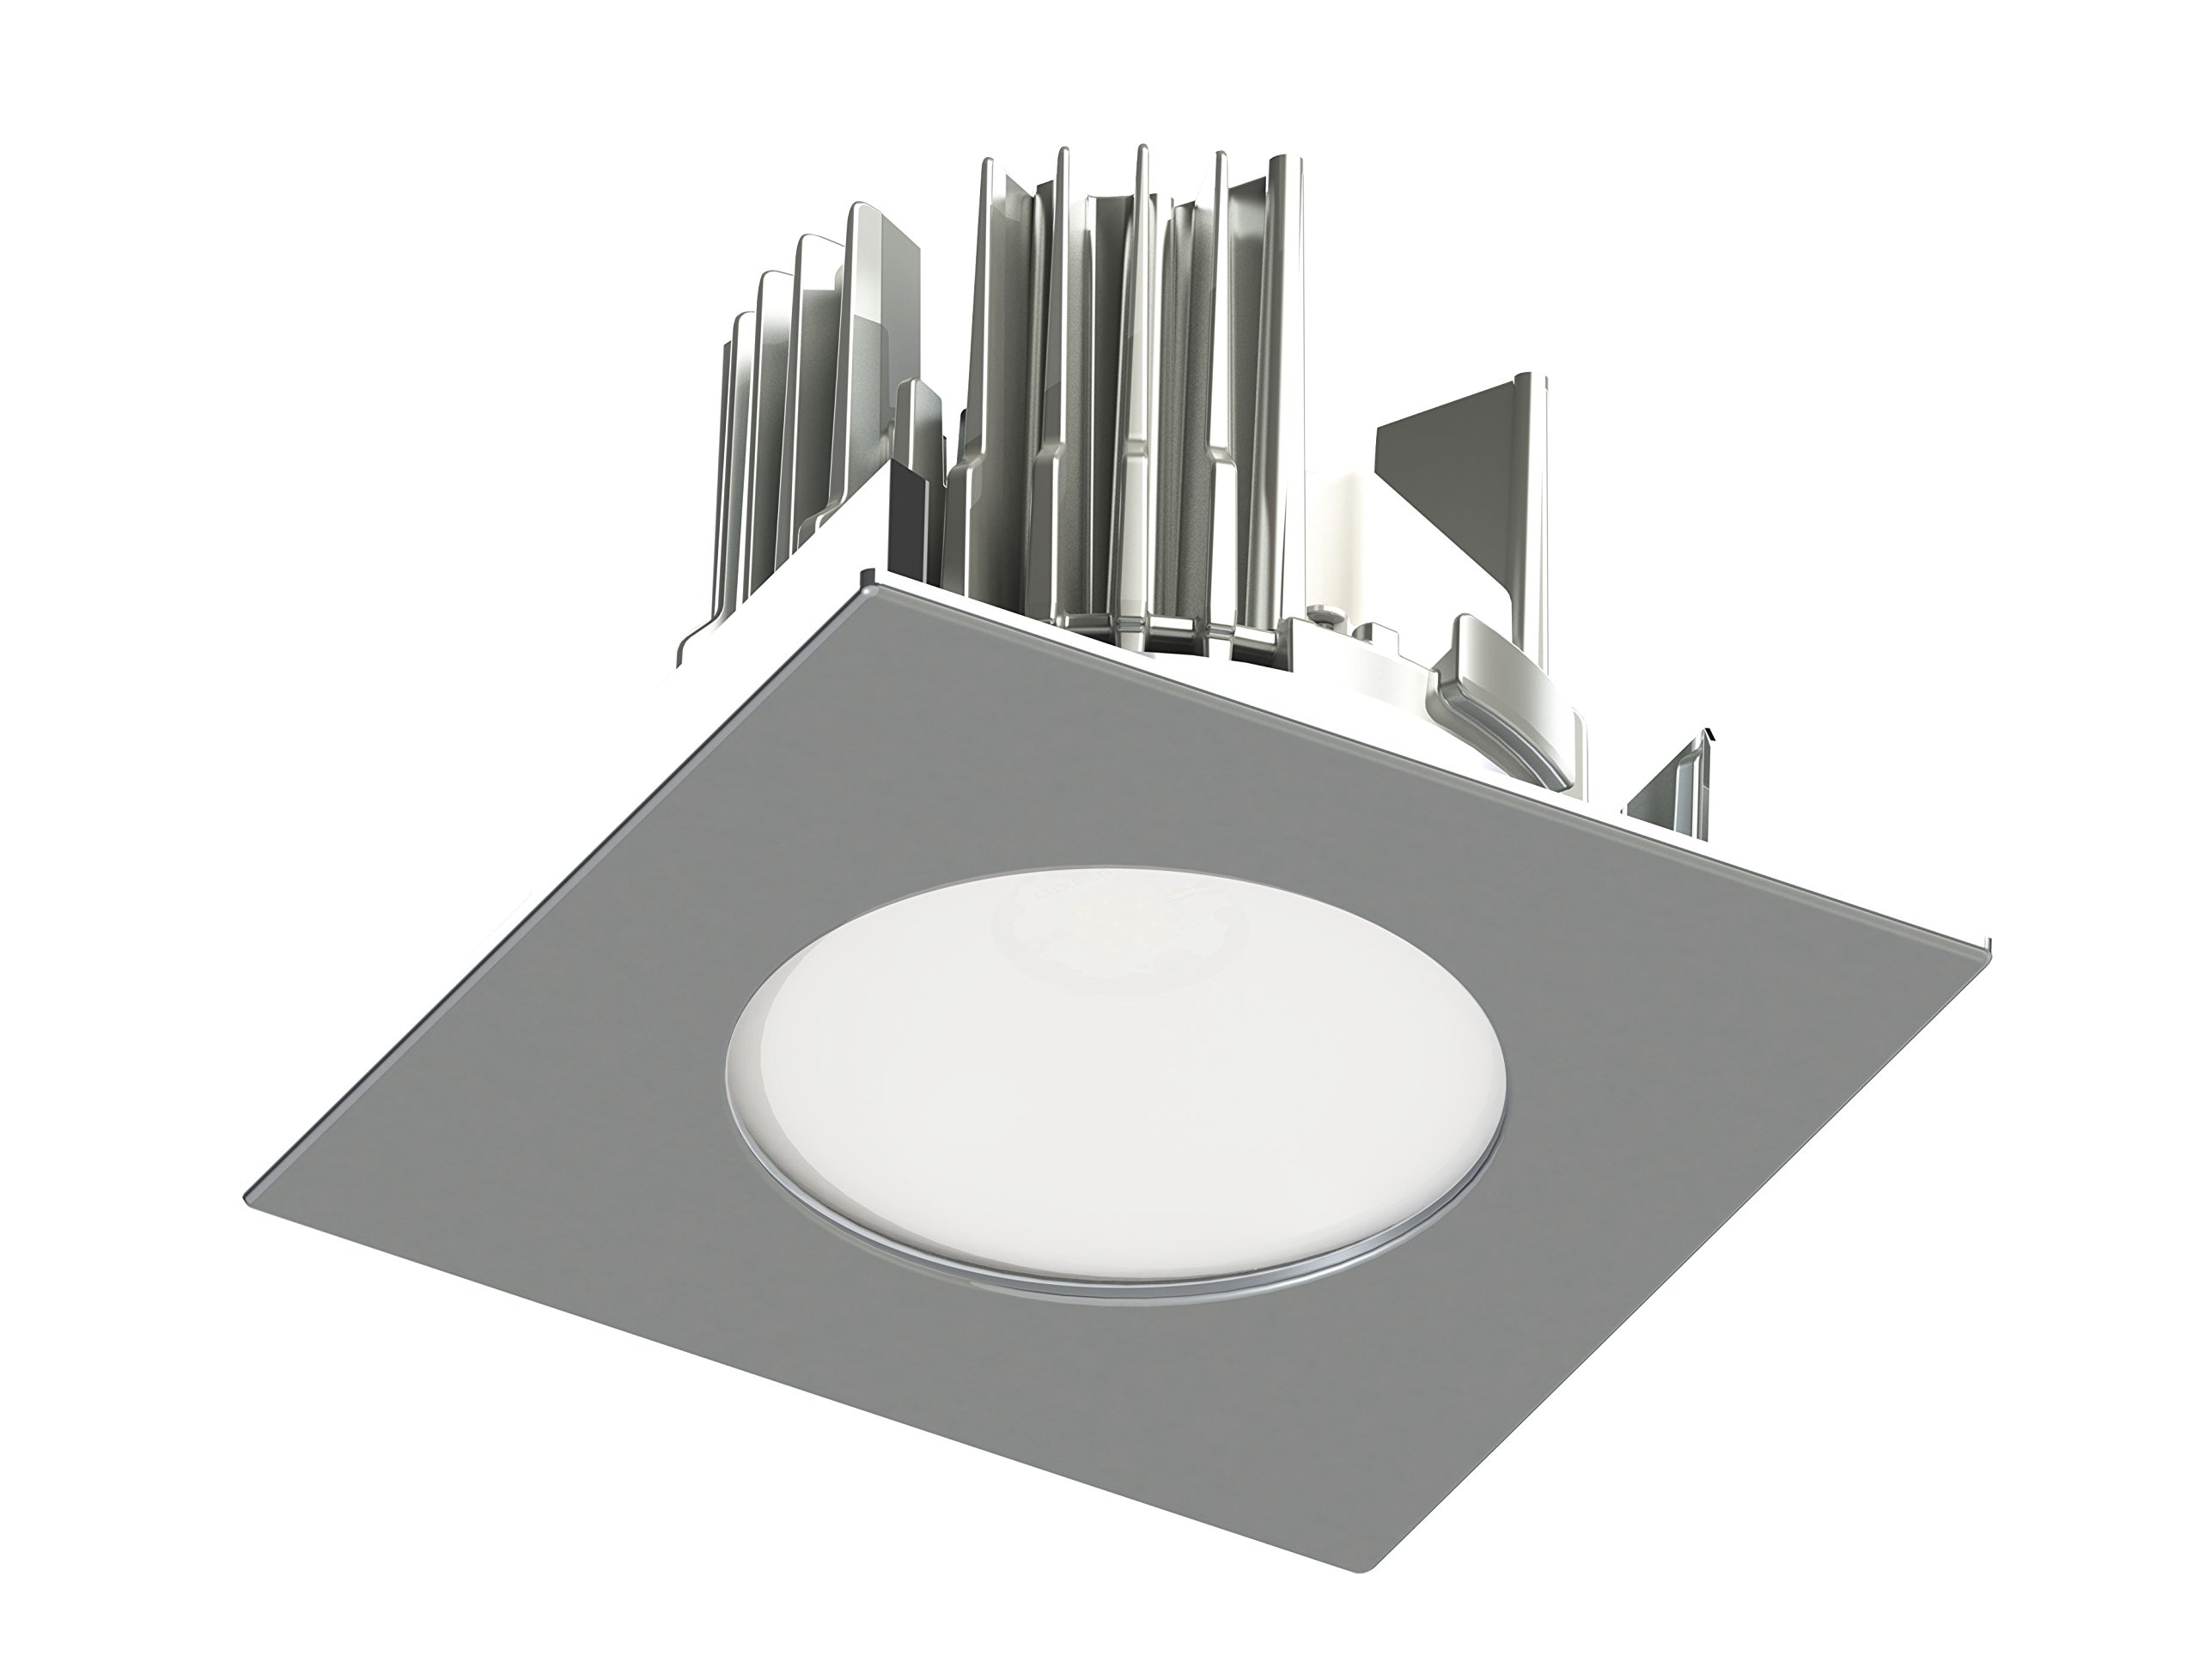 4 in Brushed Nickel LED Conversion Trim Kit allows to transform a Medium Base PAR20 Trim Contrast Lighting or other manufacturer's 4-inch Luminaire into a Dedicated LED Square Unit with Frosted Lens